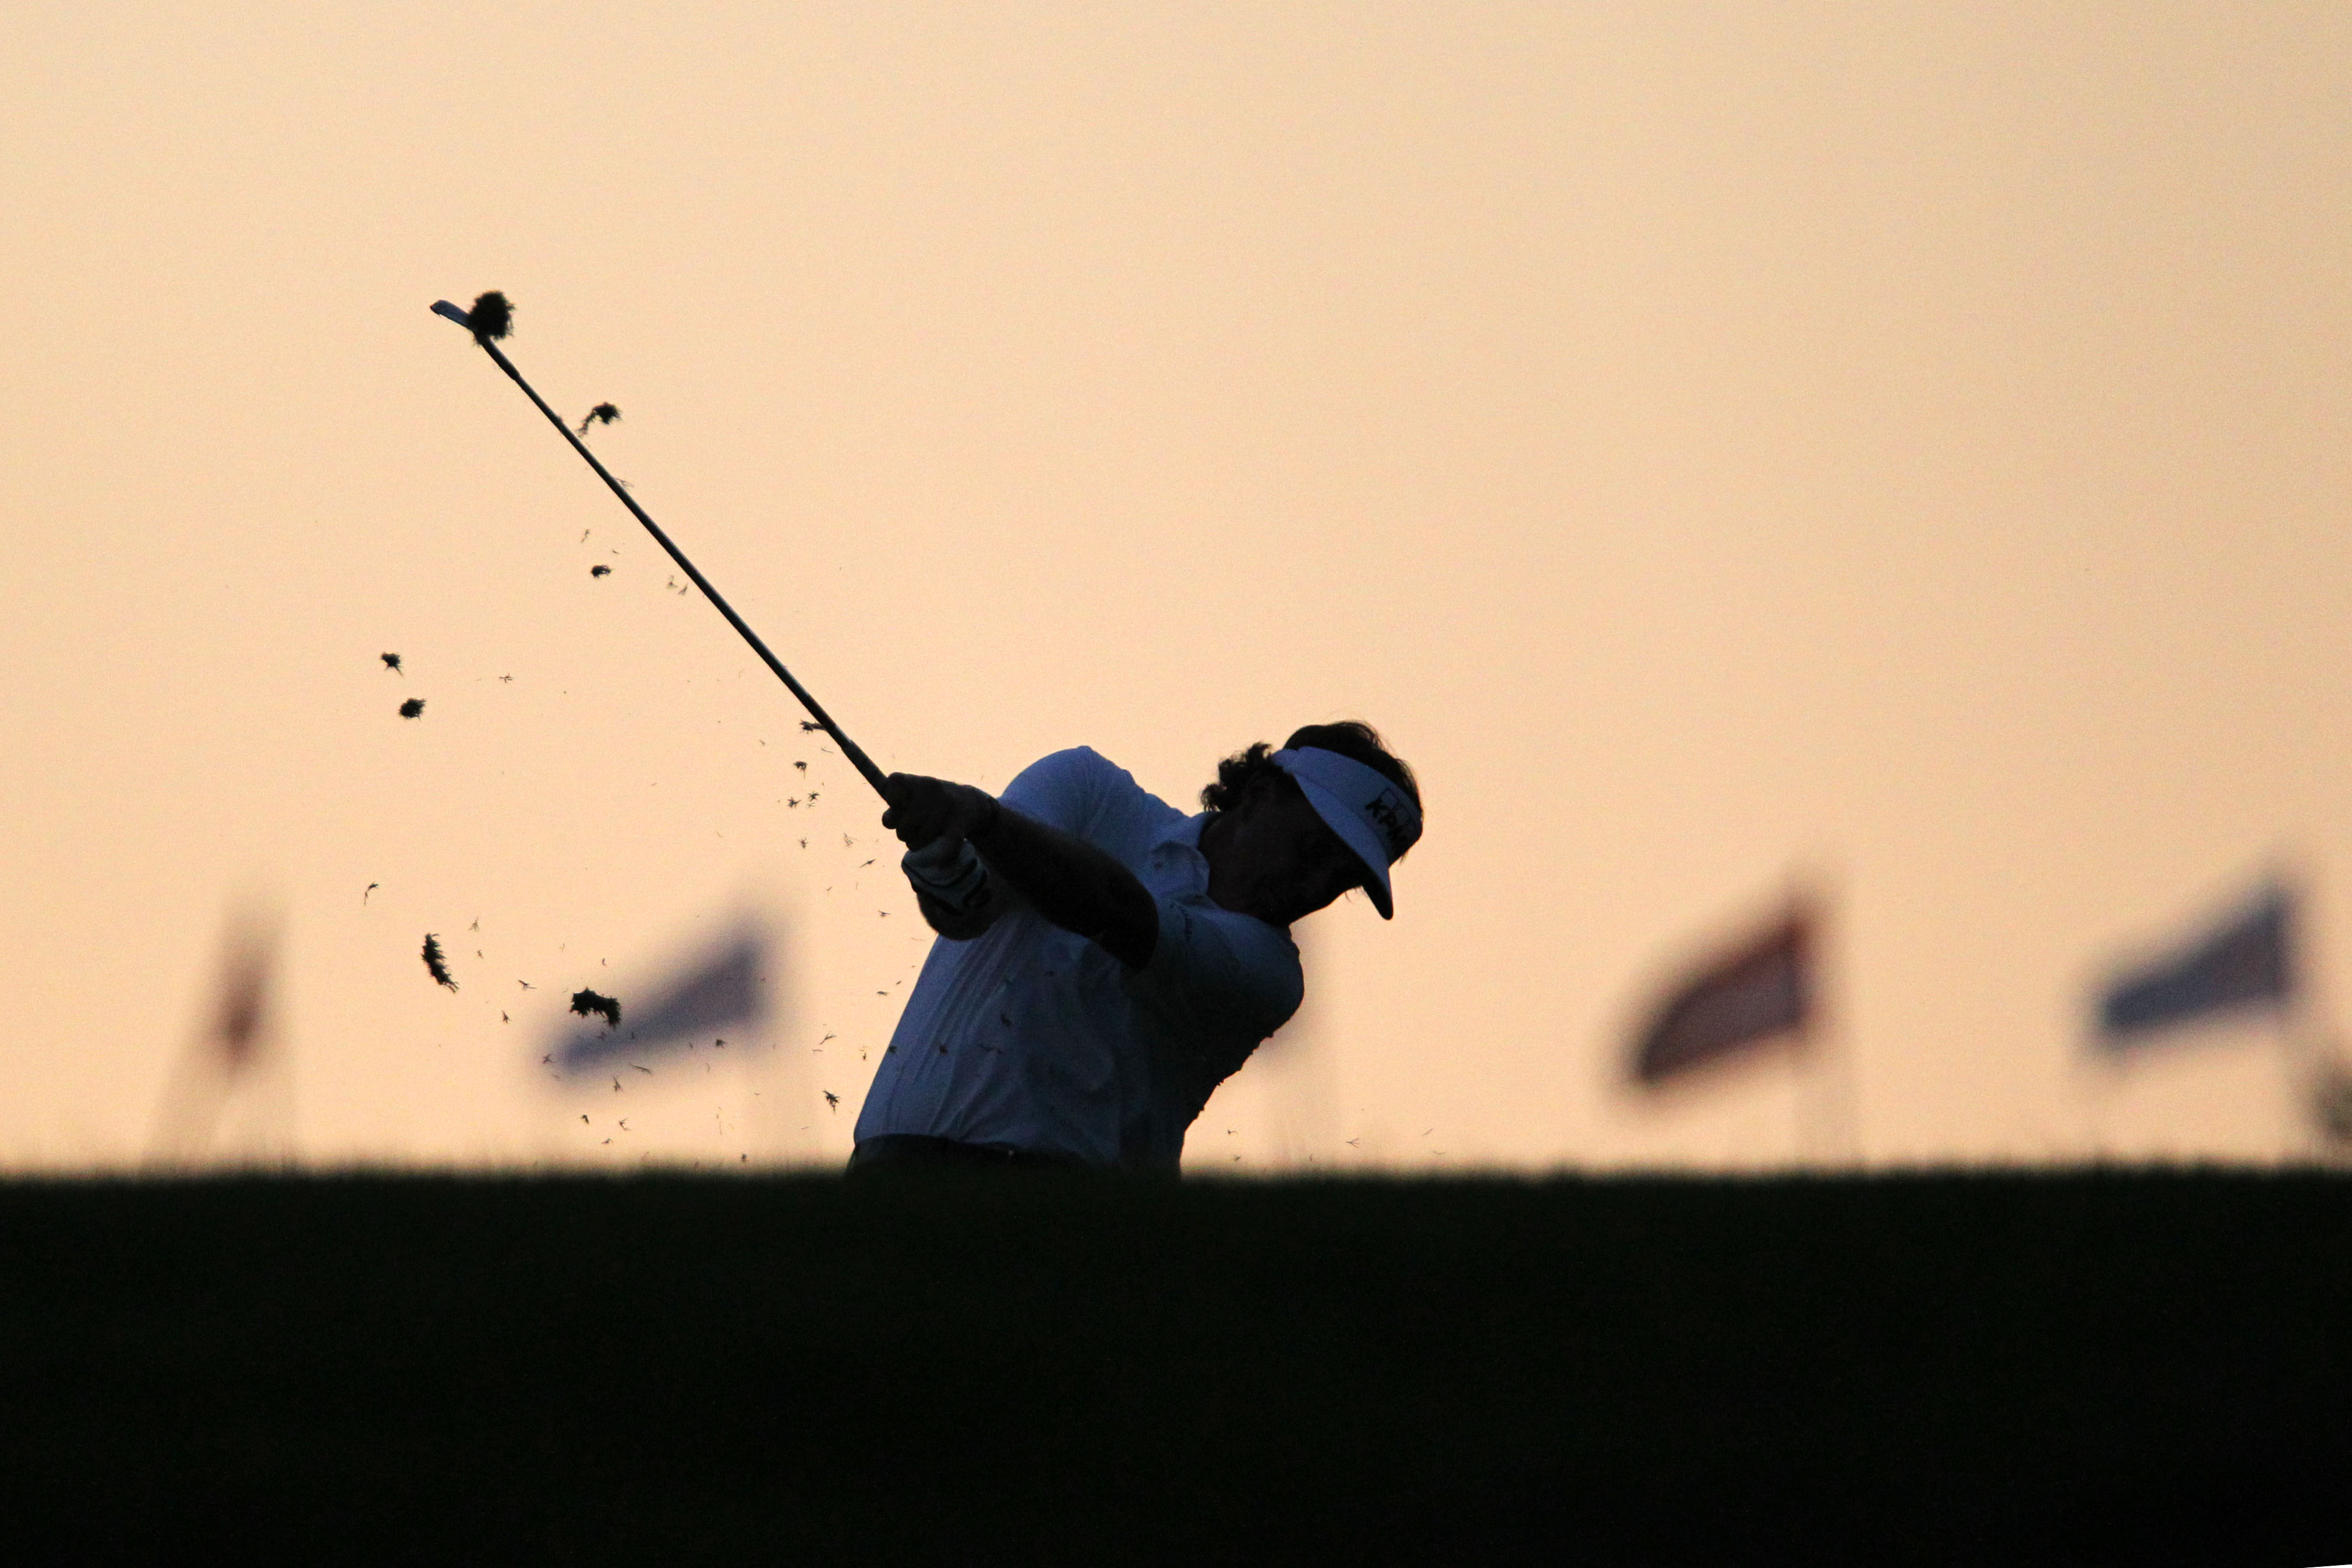 Phil Mickelson hits his second shot from the 18th fairway as darkness fell on Merion. (USA Today)